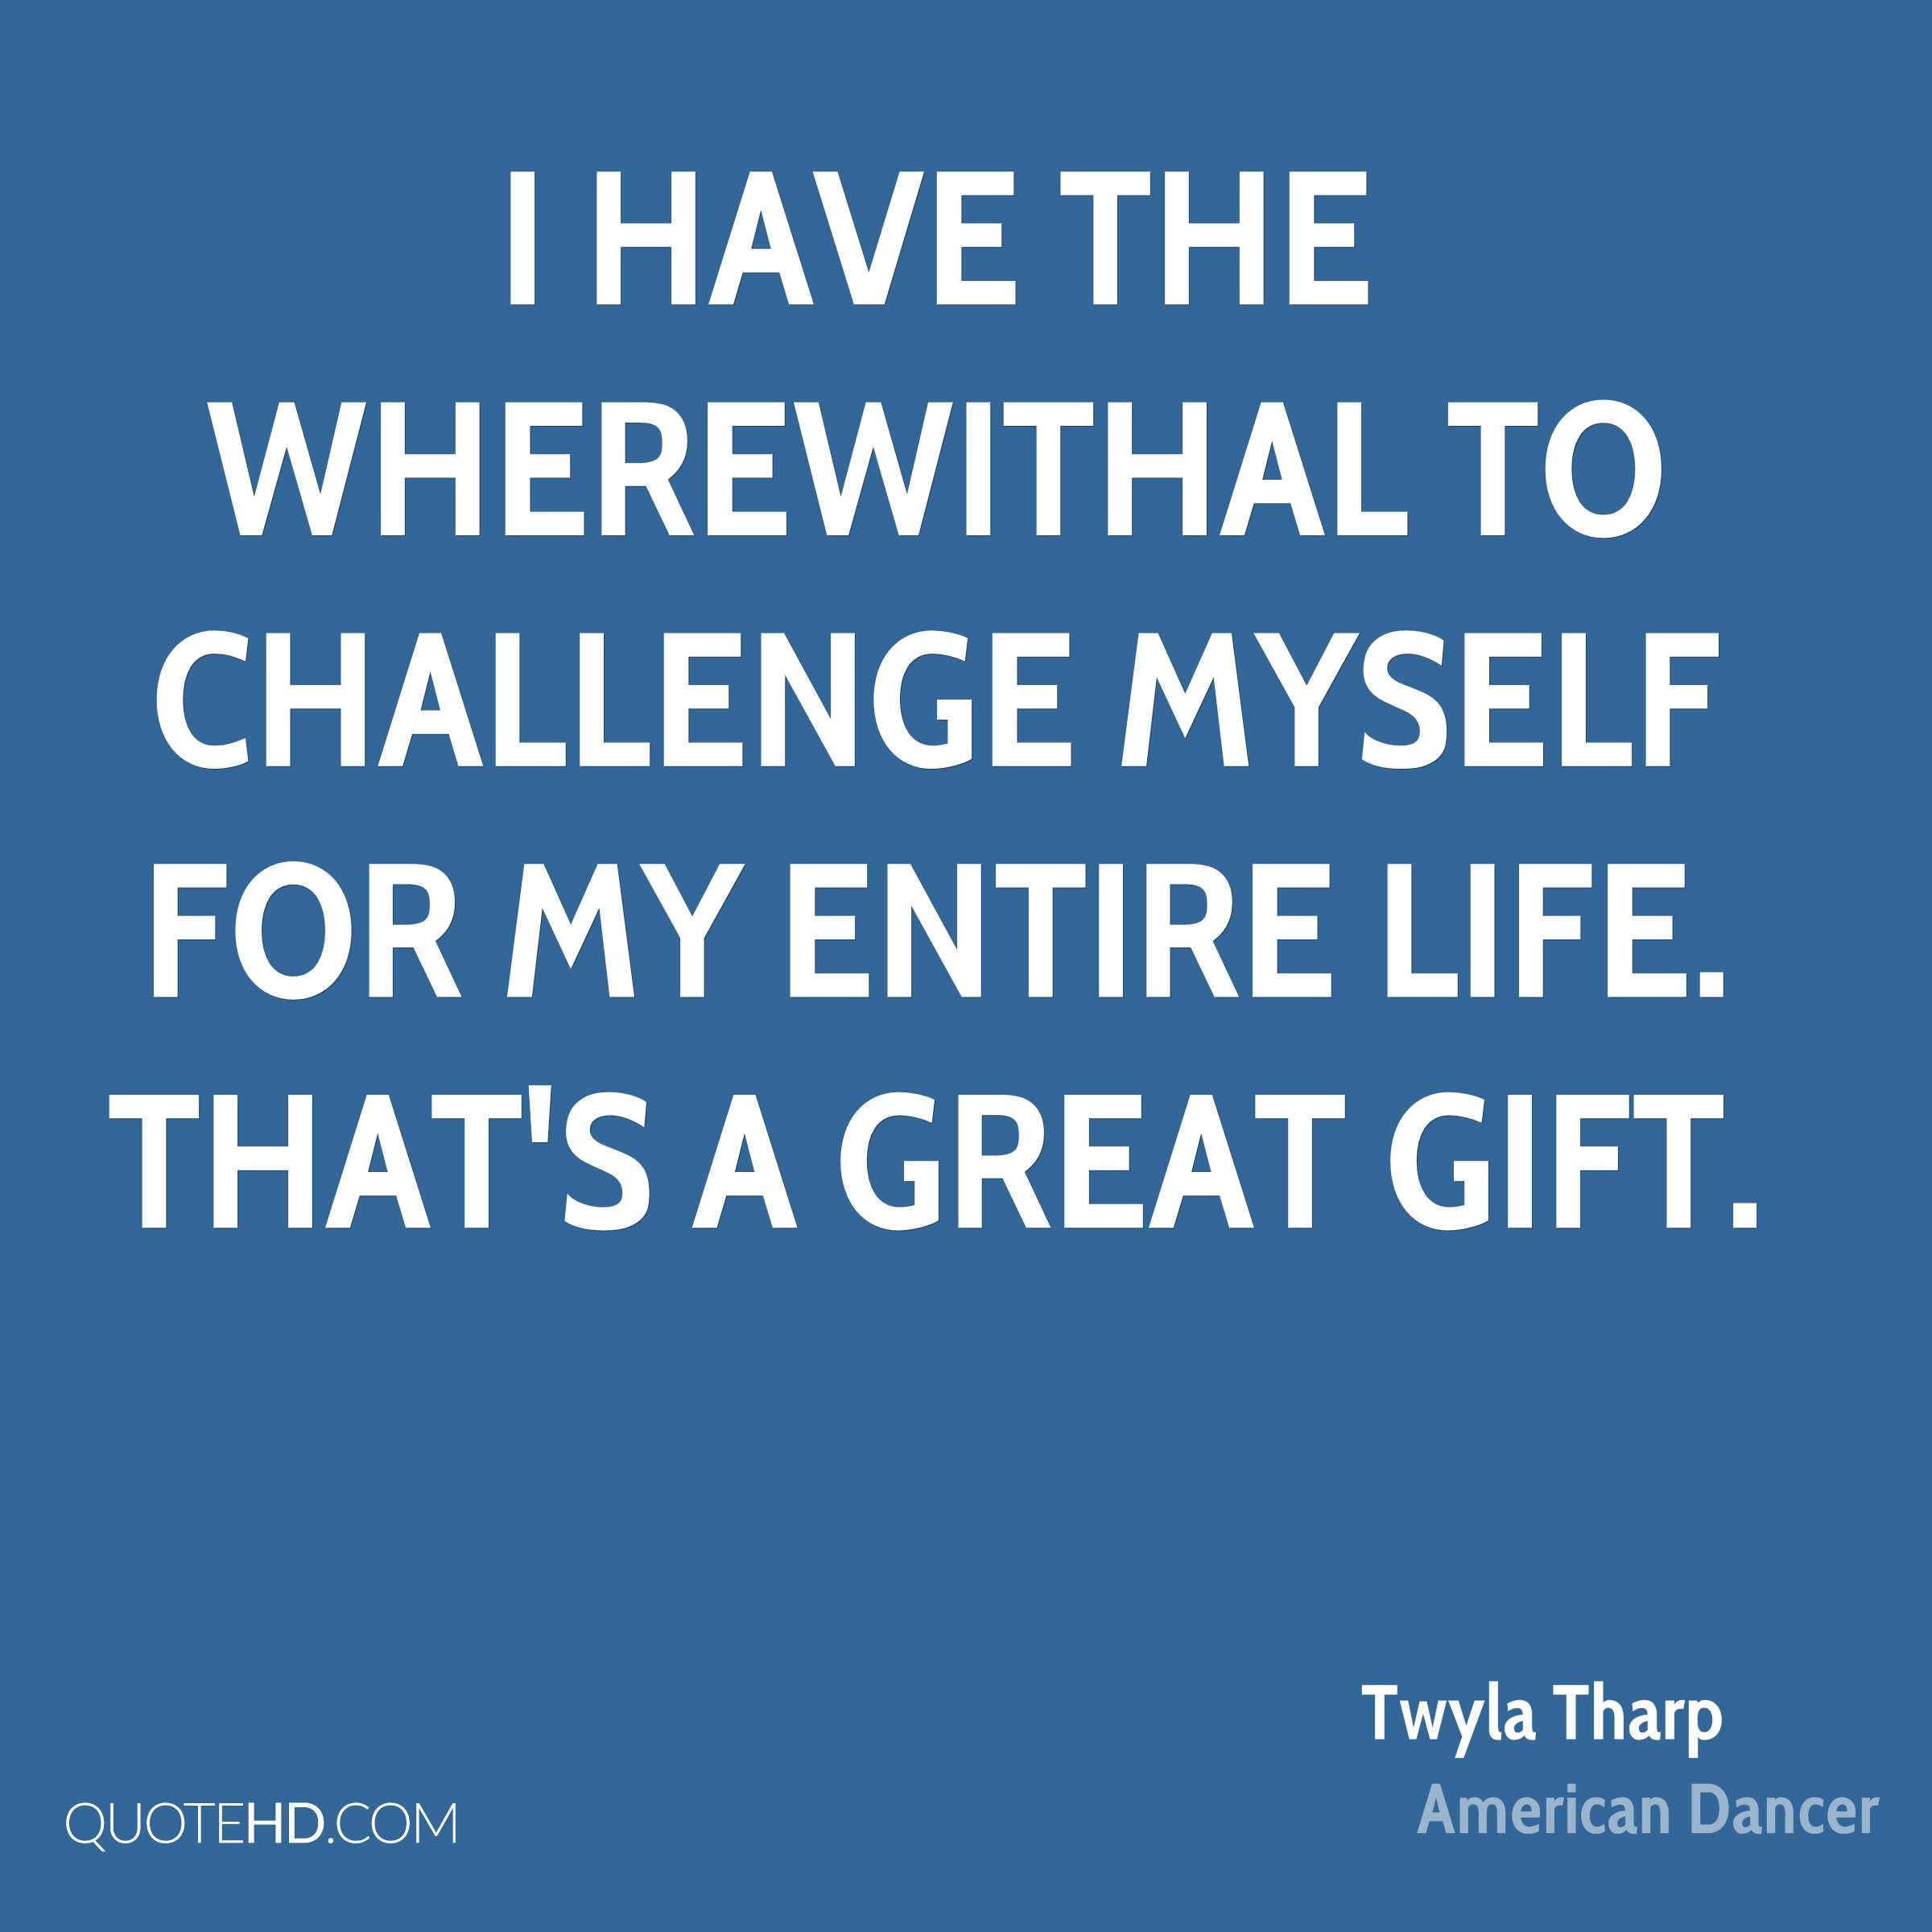 I have the wherewithal to challenge myself for my entire life. That's a great gift.